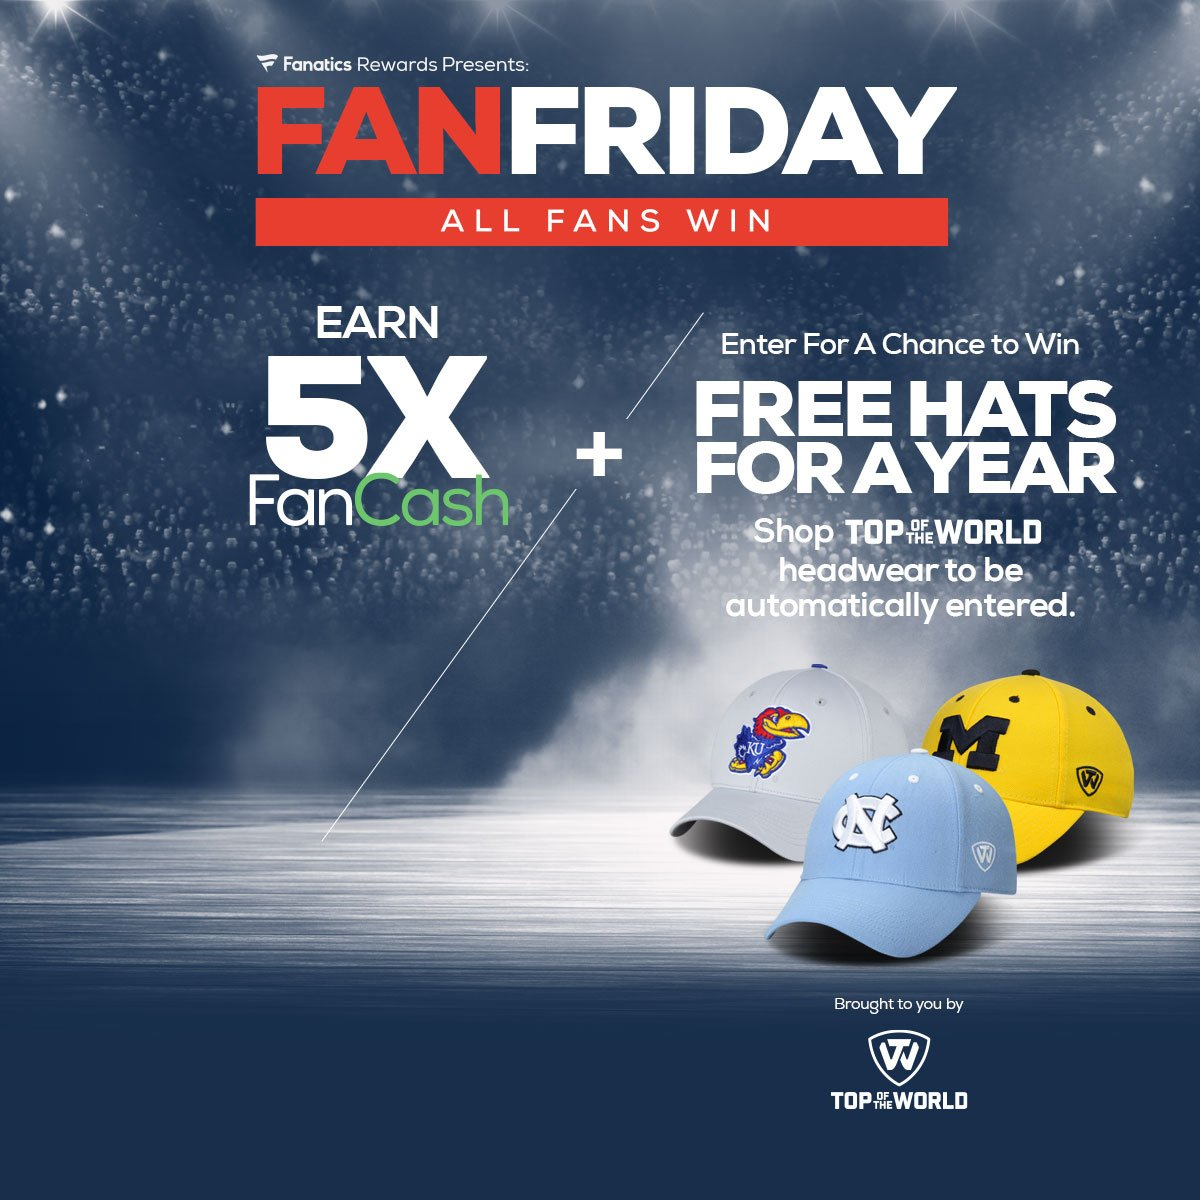 923a3e903  TGIFanFriday is back! Enter to win free hats for a year AND get 5x  FanCash! Enter here  http   bit.ly 2DPwTsD pic.twitter.com 4pKqJRbQN9